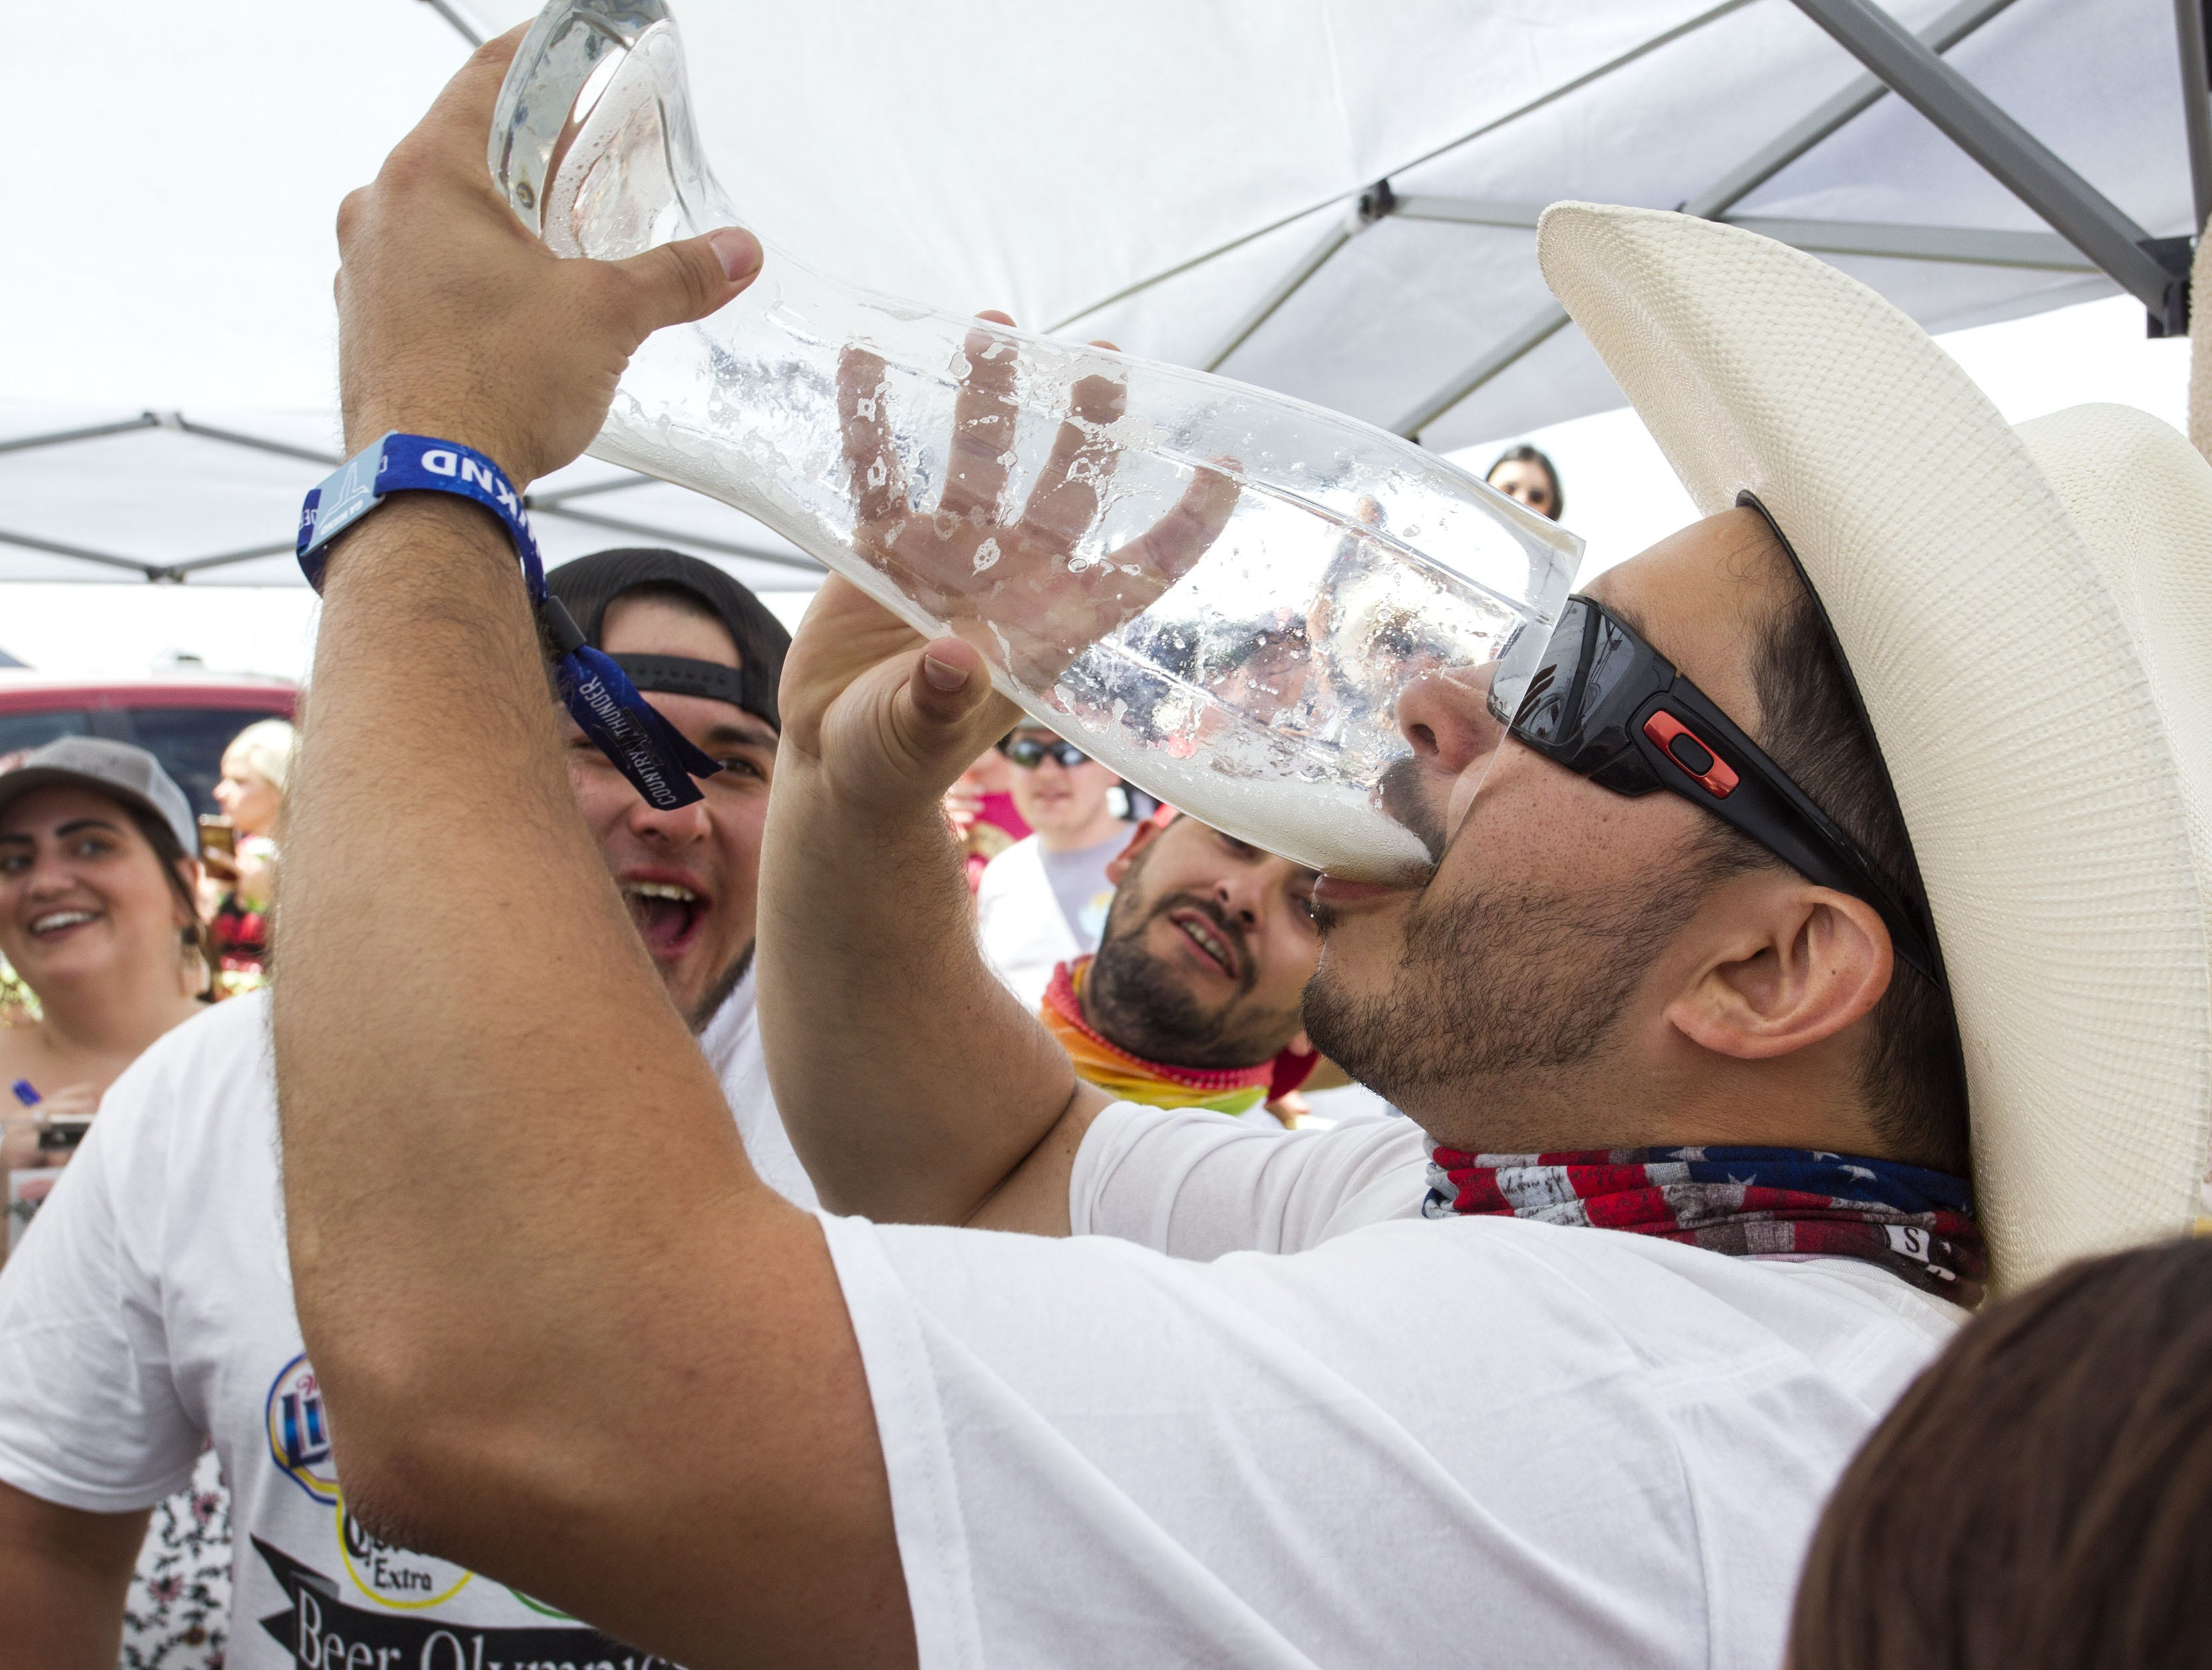 With his teammates cheering him on, Last Chance Drunk Beer Olympian Justin Rodriguez downs the last sips of beer during the beer chugging game at Country Thunder Arizona Friday, April 12, 2019, in Florence, Arizona.